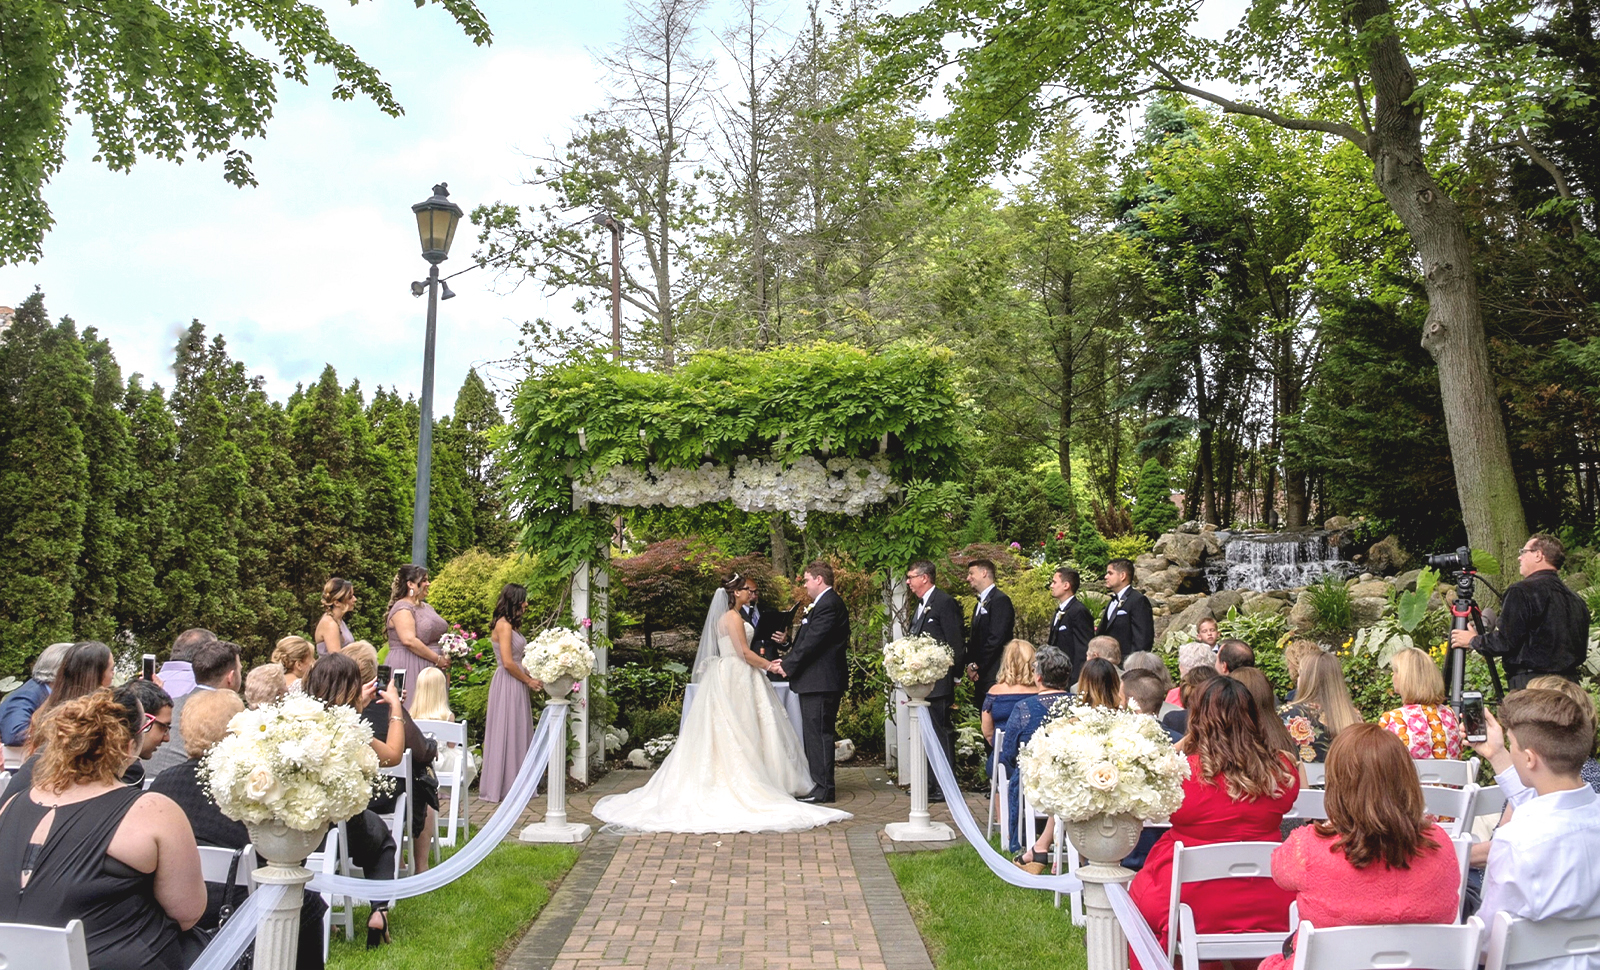 couple getting married wedding ceremony outside the fox hollow